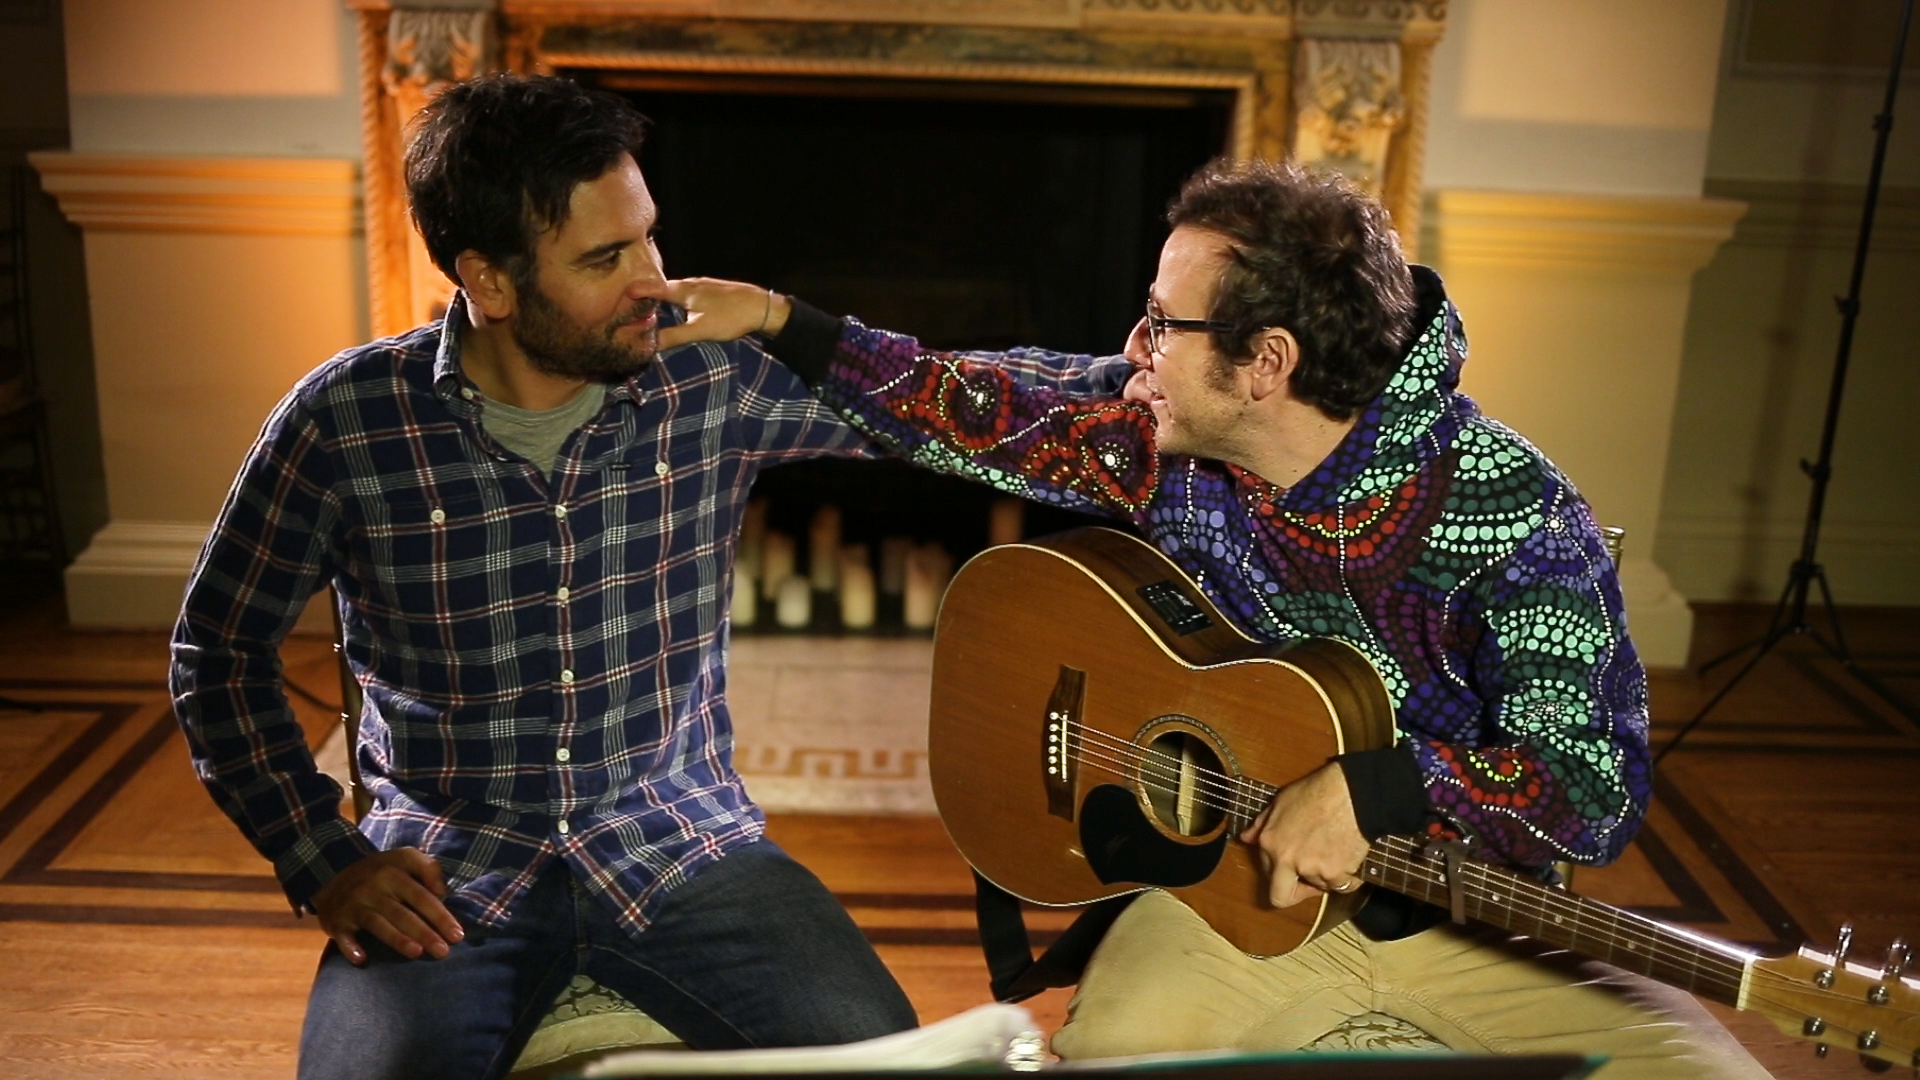 Radnor and Lee: A Beautiful Bro-Mance - Actor/writer/director Josh Radnor and singer-songwriter Ben Lee were friends for a decade before they decided to make music together.Season 4, Episode 10